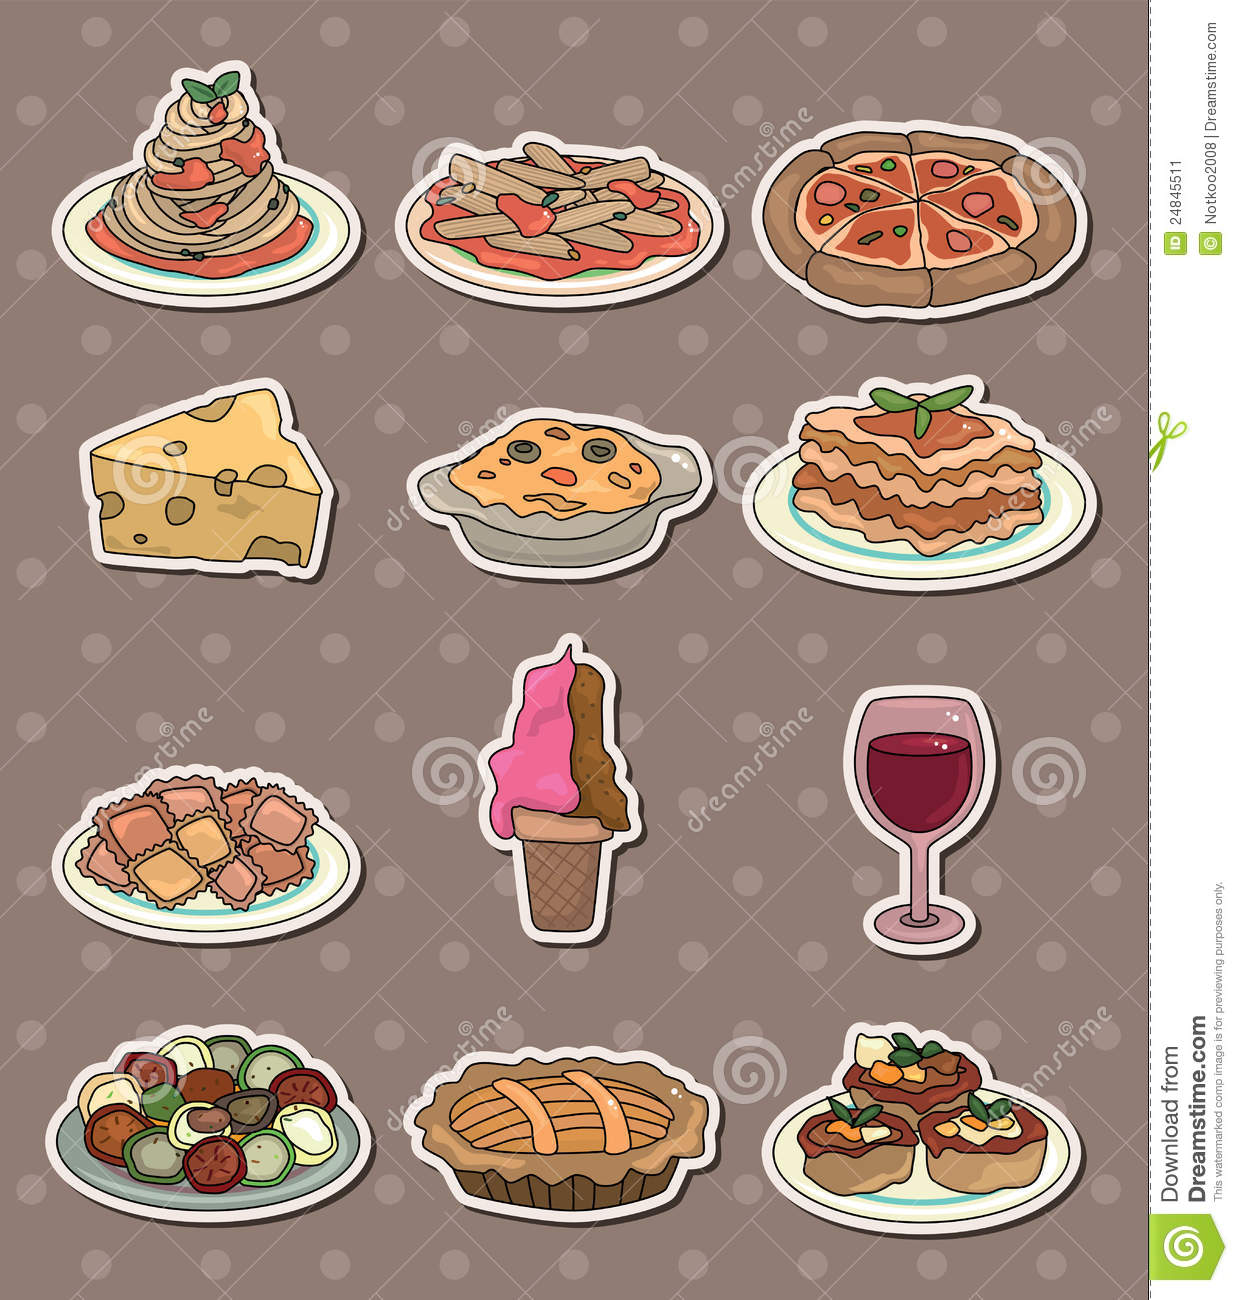 Cheap italy food stickers stock image image stickers - Stickers protection cuisine ...